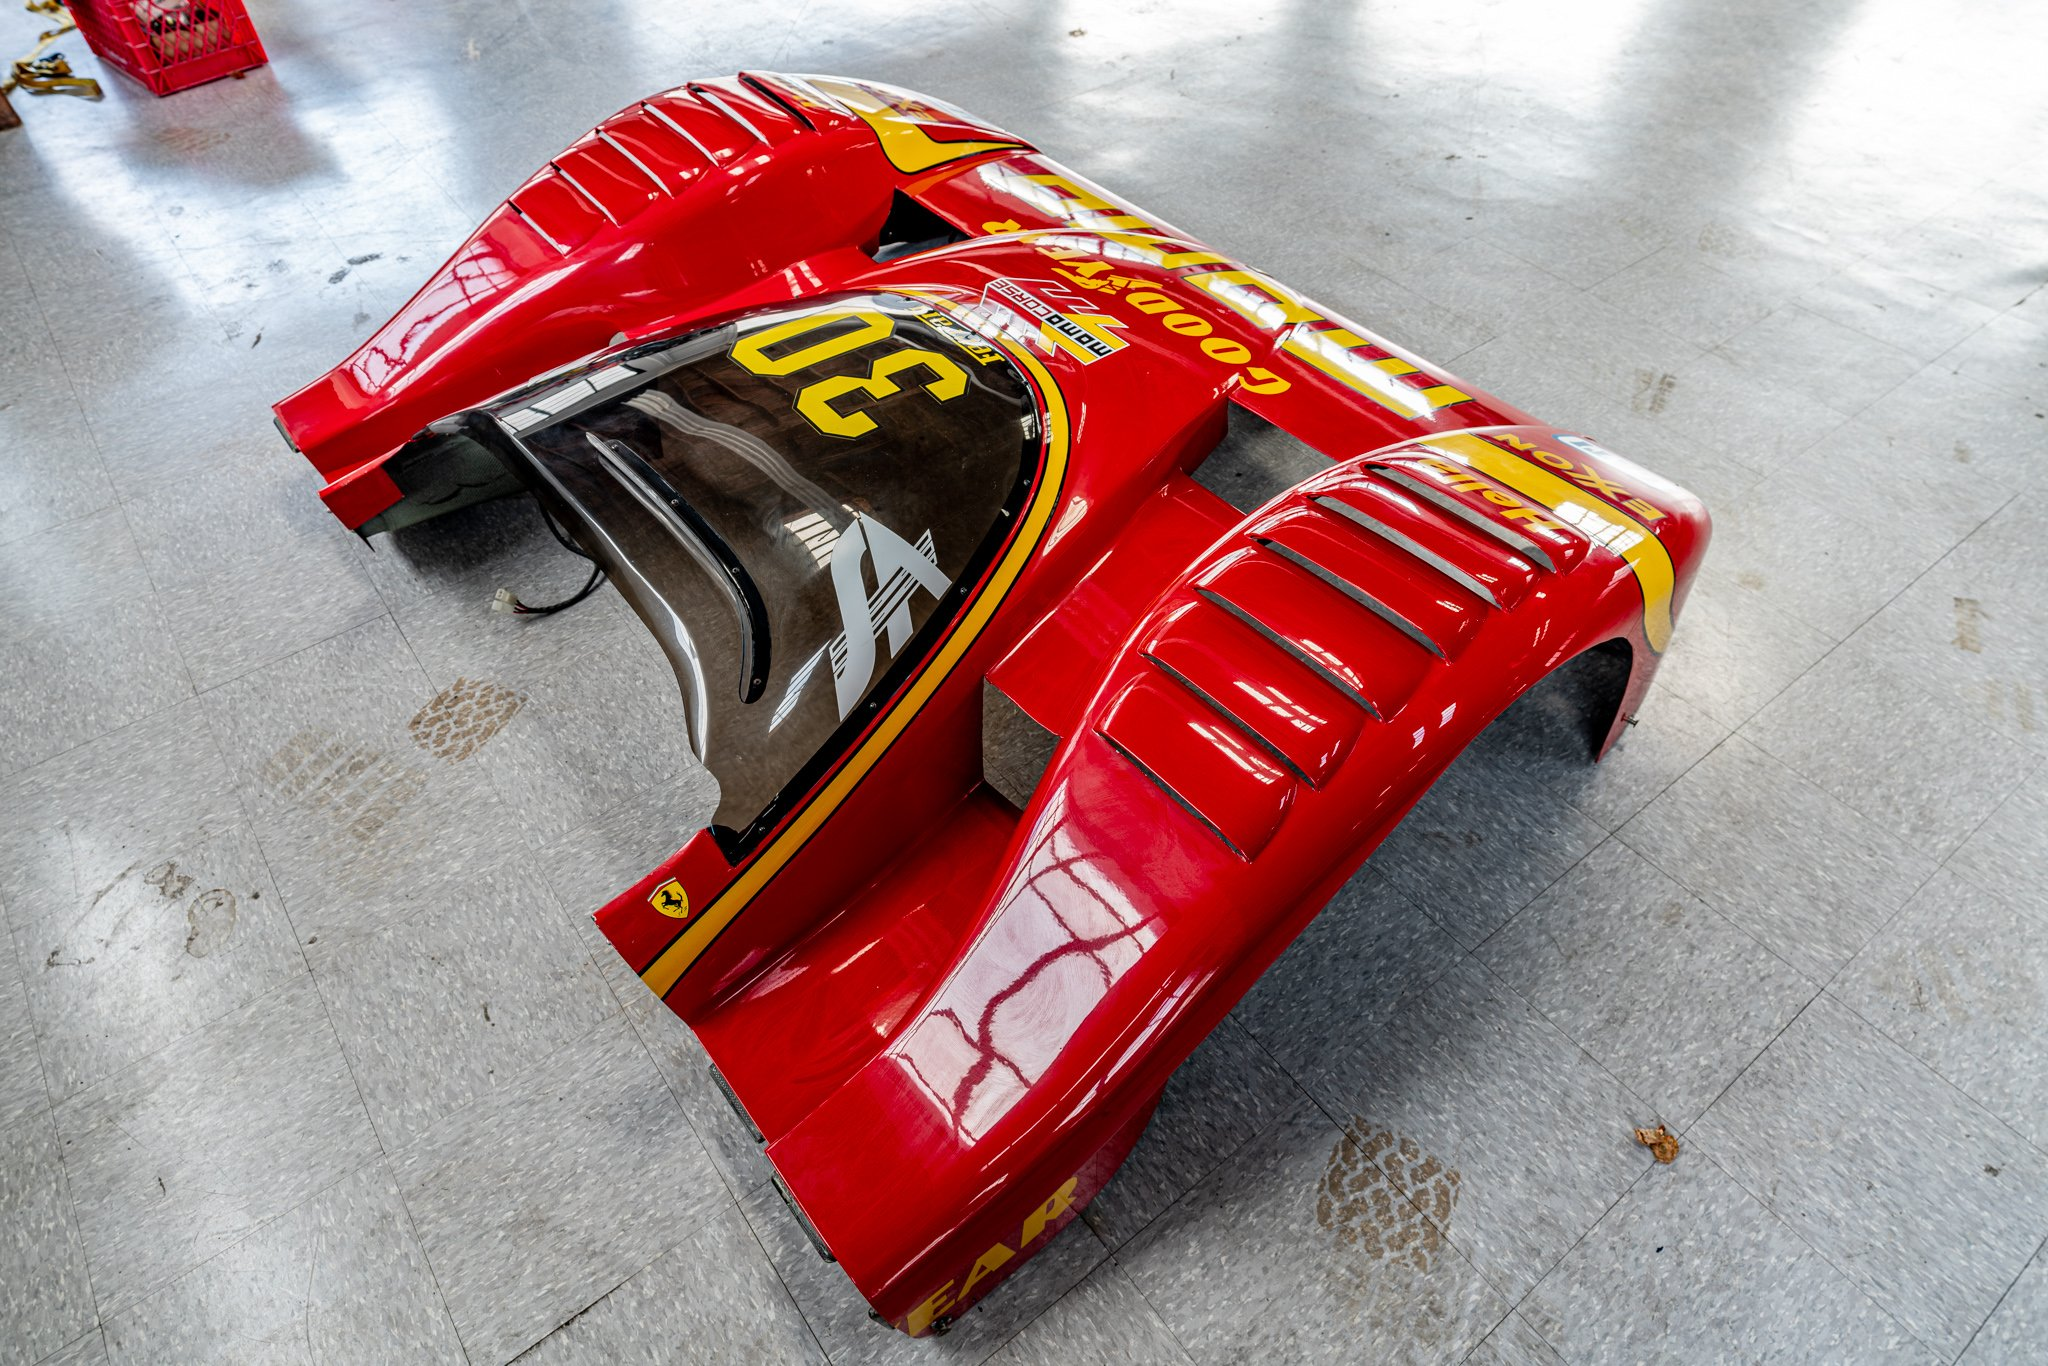 original spare nose from ferrari 333 SP #06